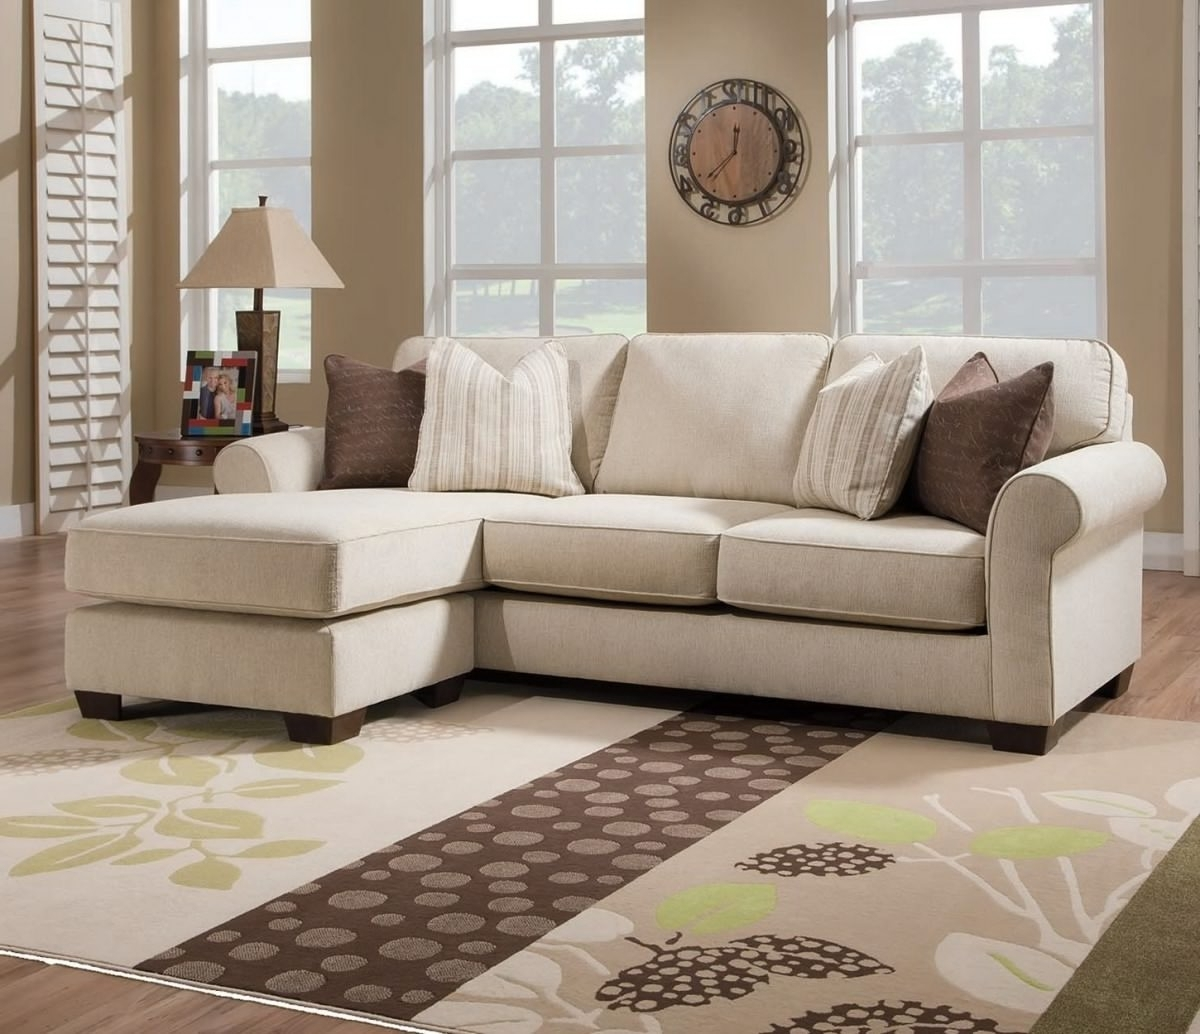 Sectional Sofa Design: Sectional Sofas Small Spaces Armless In Favorite Inexpensive Sectional Sofas For Small Spaces (View 6 of 15)